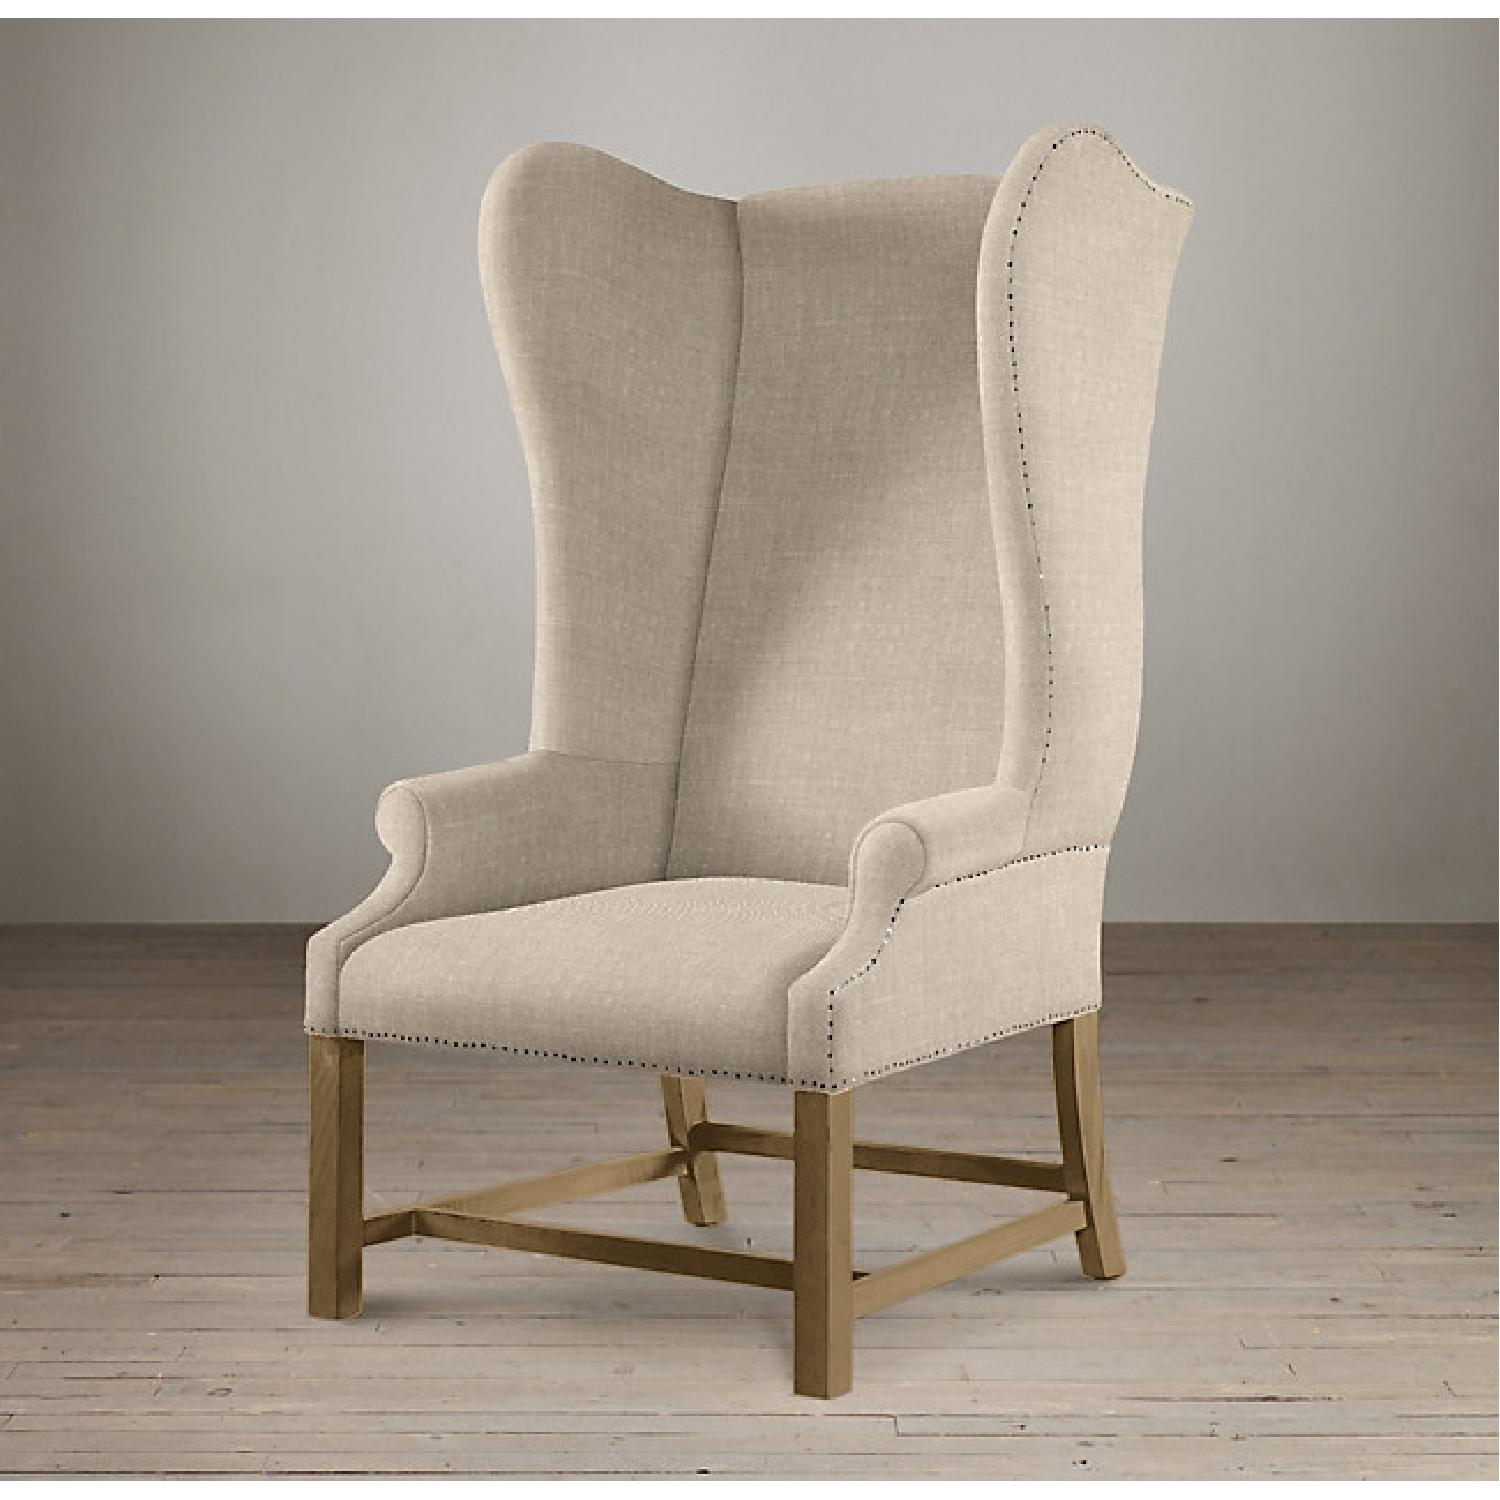 Restoration Hardware French Wingback Chair - image-0